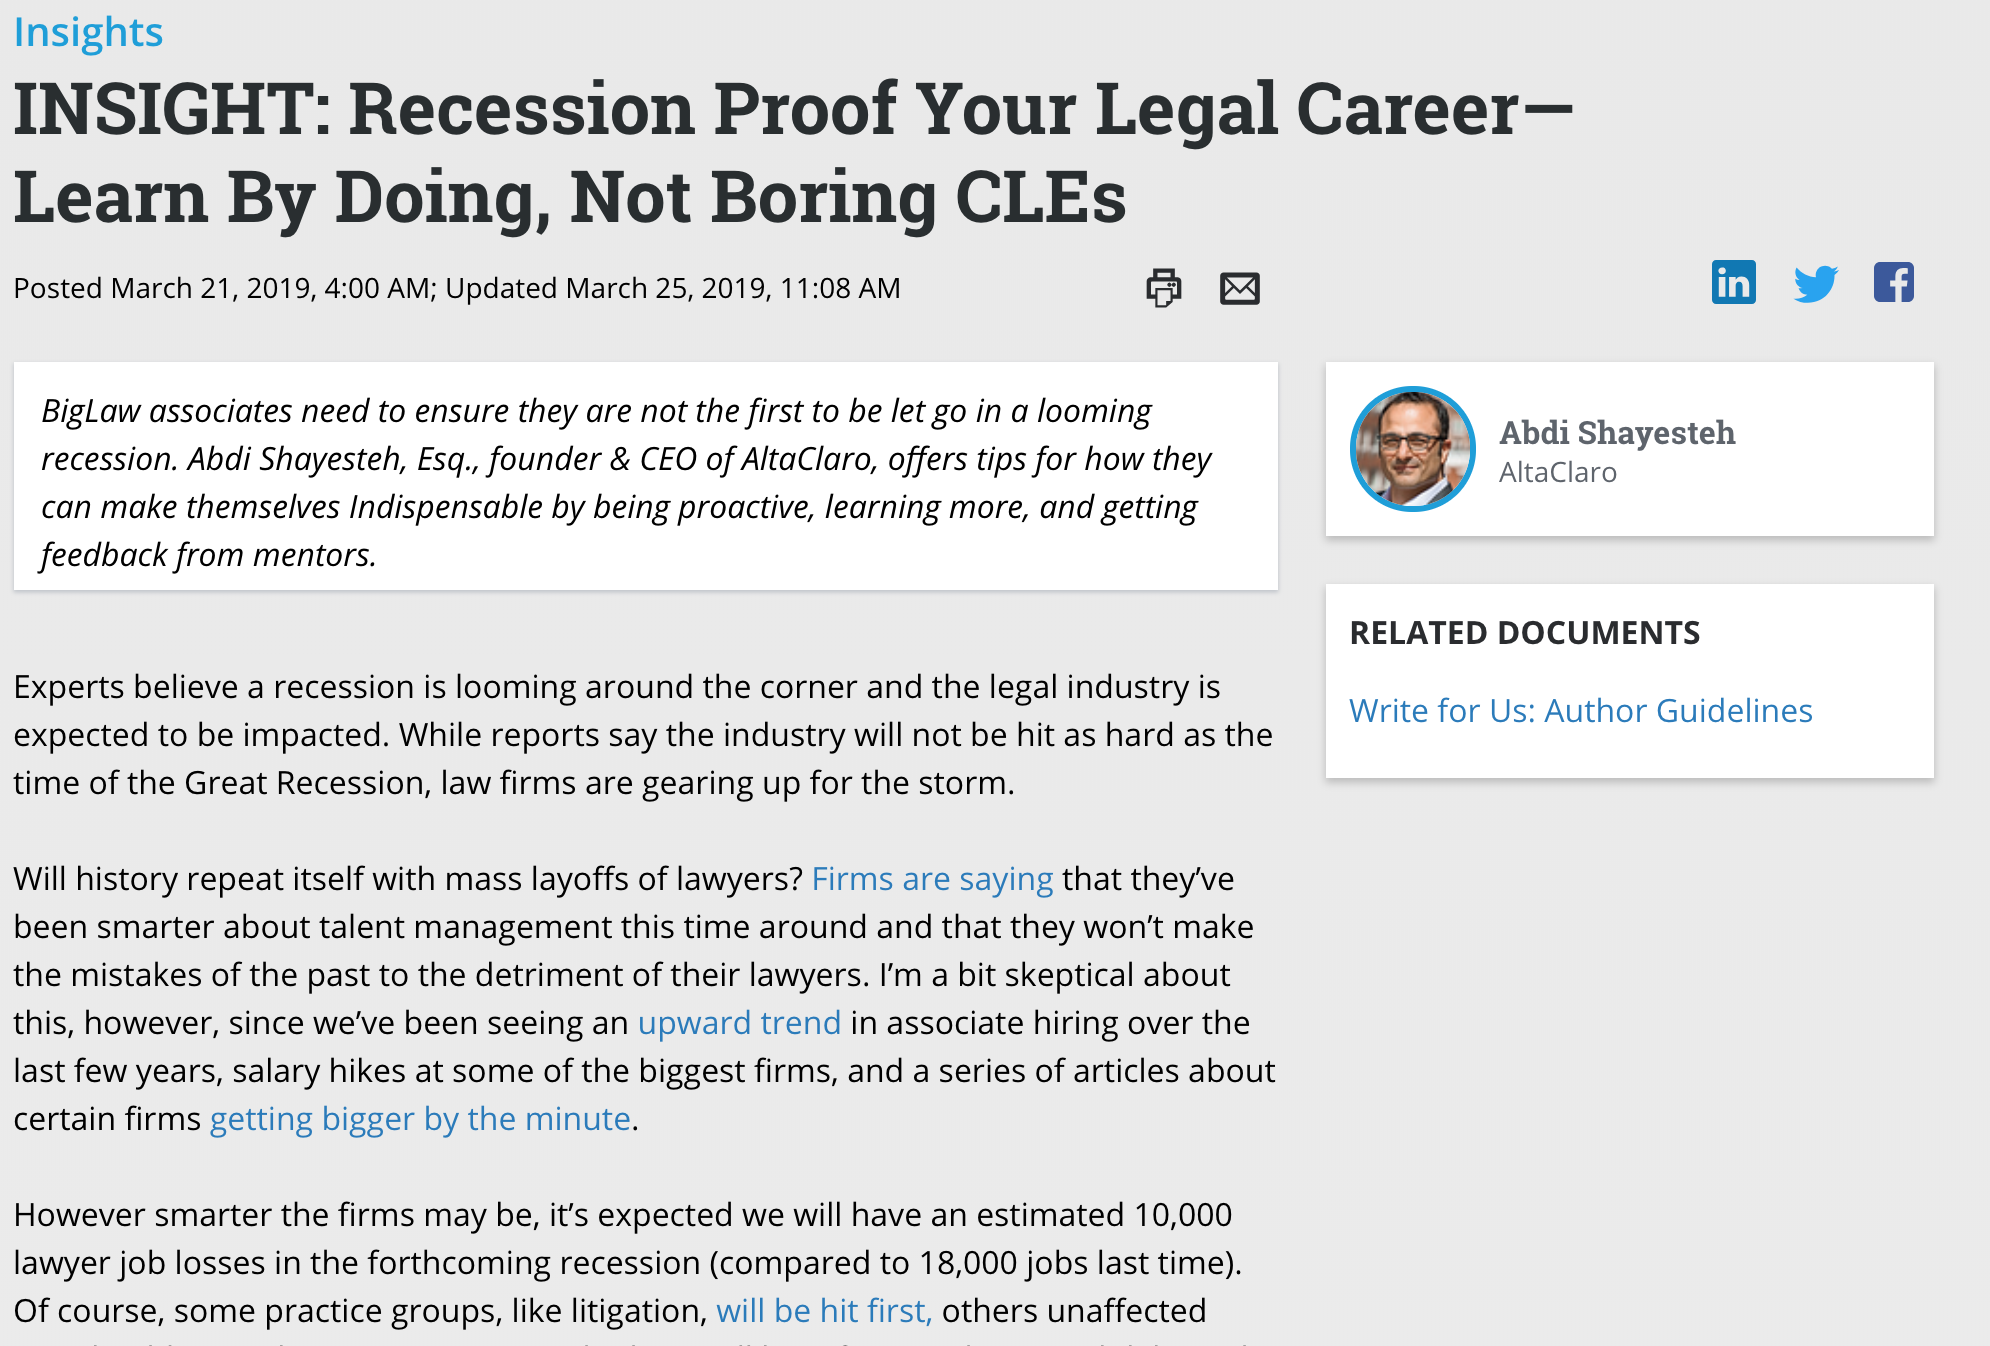 INSIGHTS: Recession Proof Your Legal Career—Learn By Doing, Not